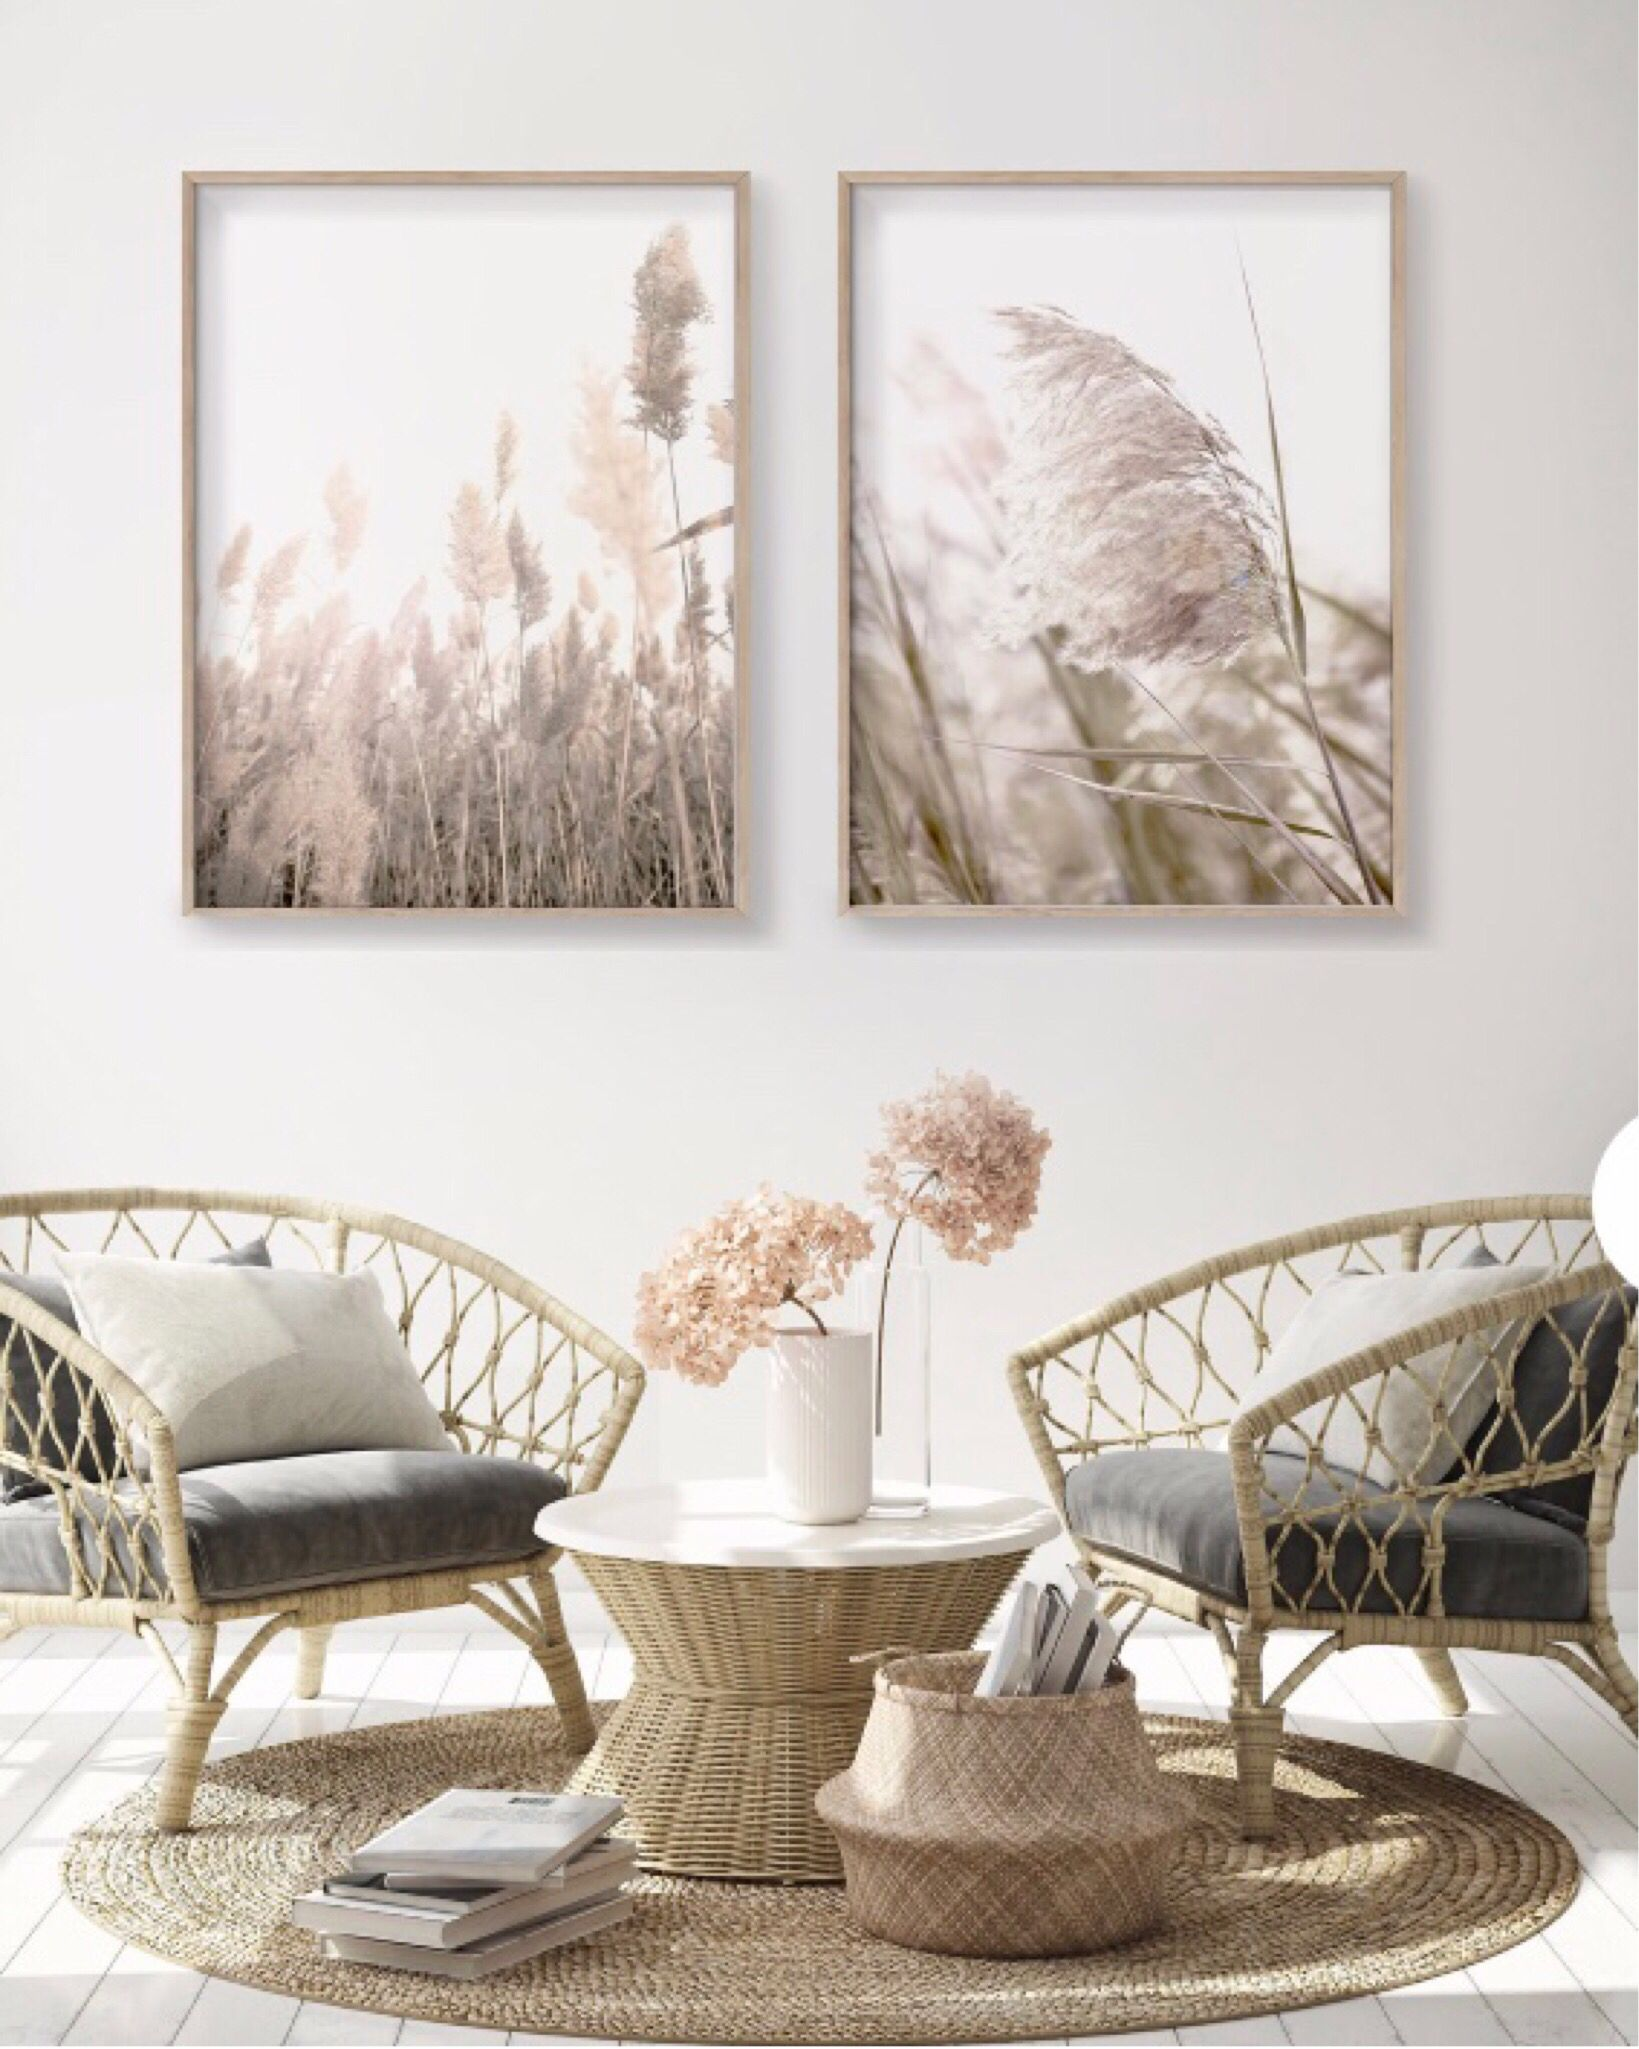 Pampas grass set of two wall print. Perfect for the living room or over your bed. #homedecoration #homedecorlivingroom #wallprints #pampasgrass #homedesignideas #livingroomdecor #walldecoration